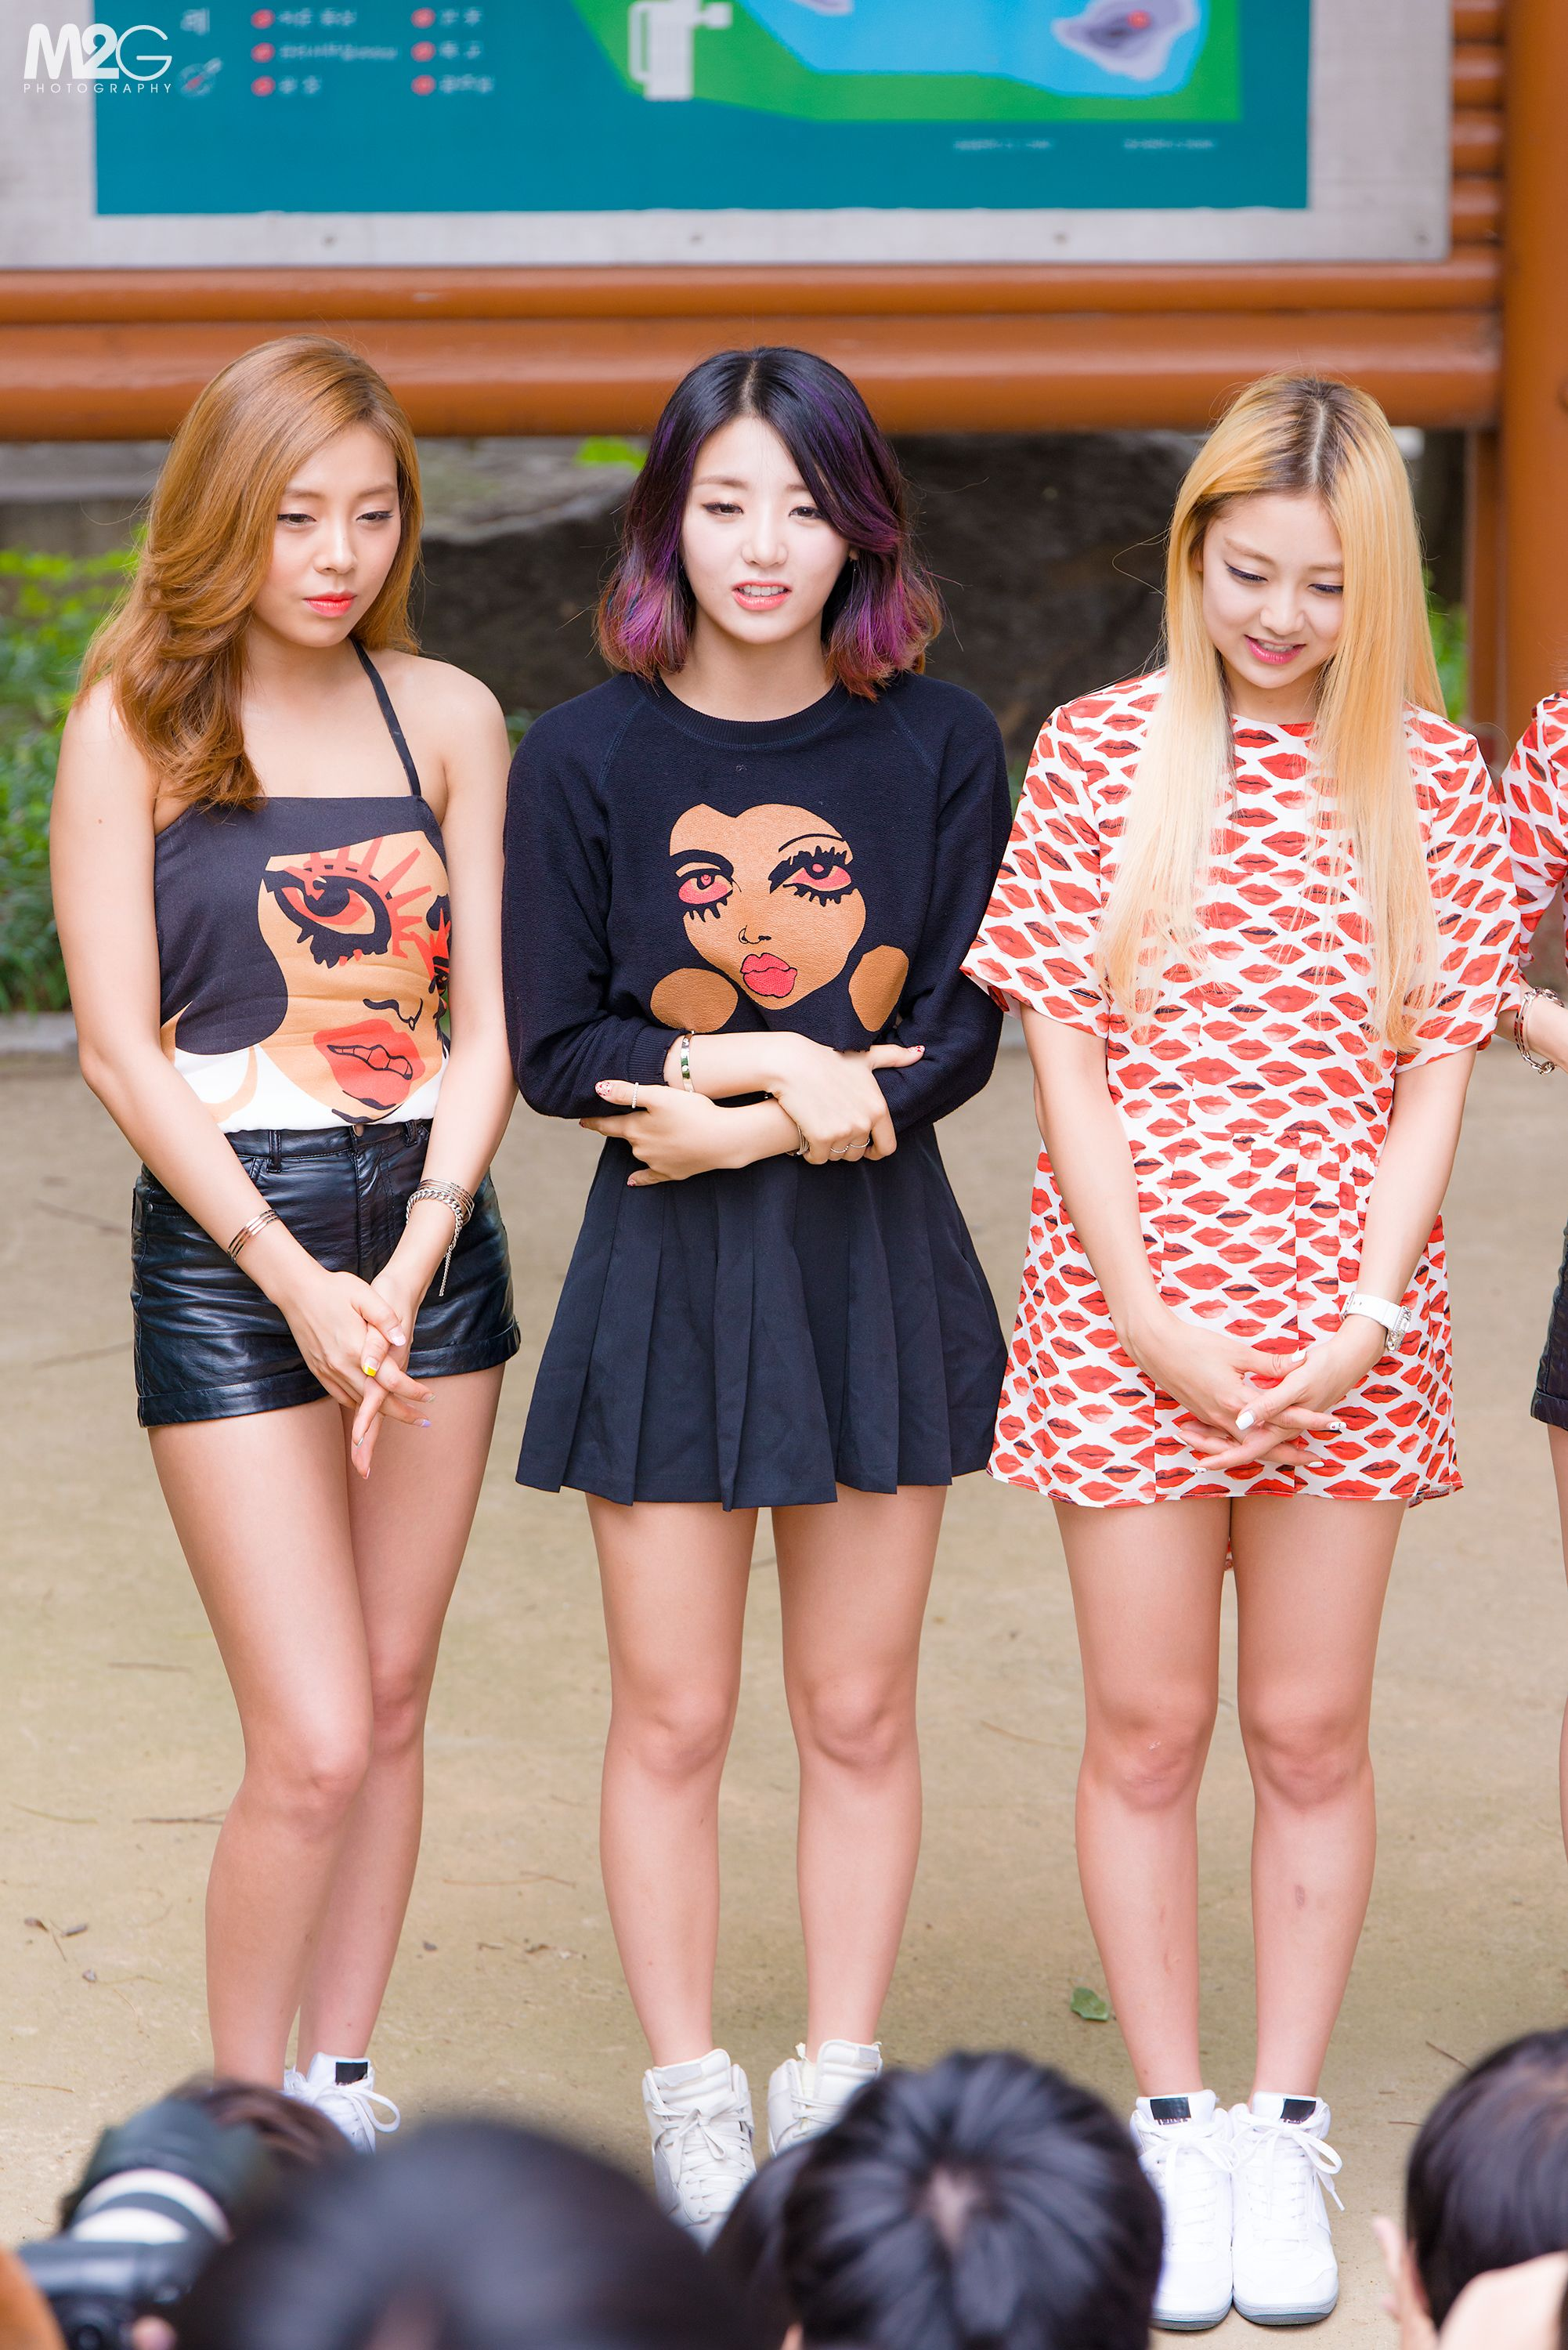 Ladies Code Ashley Eunb And Rise Lady Kpop Girls Beutiful Girls